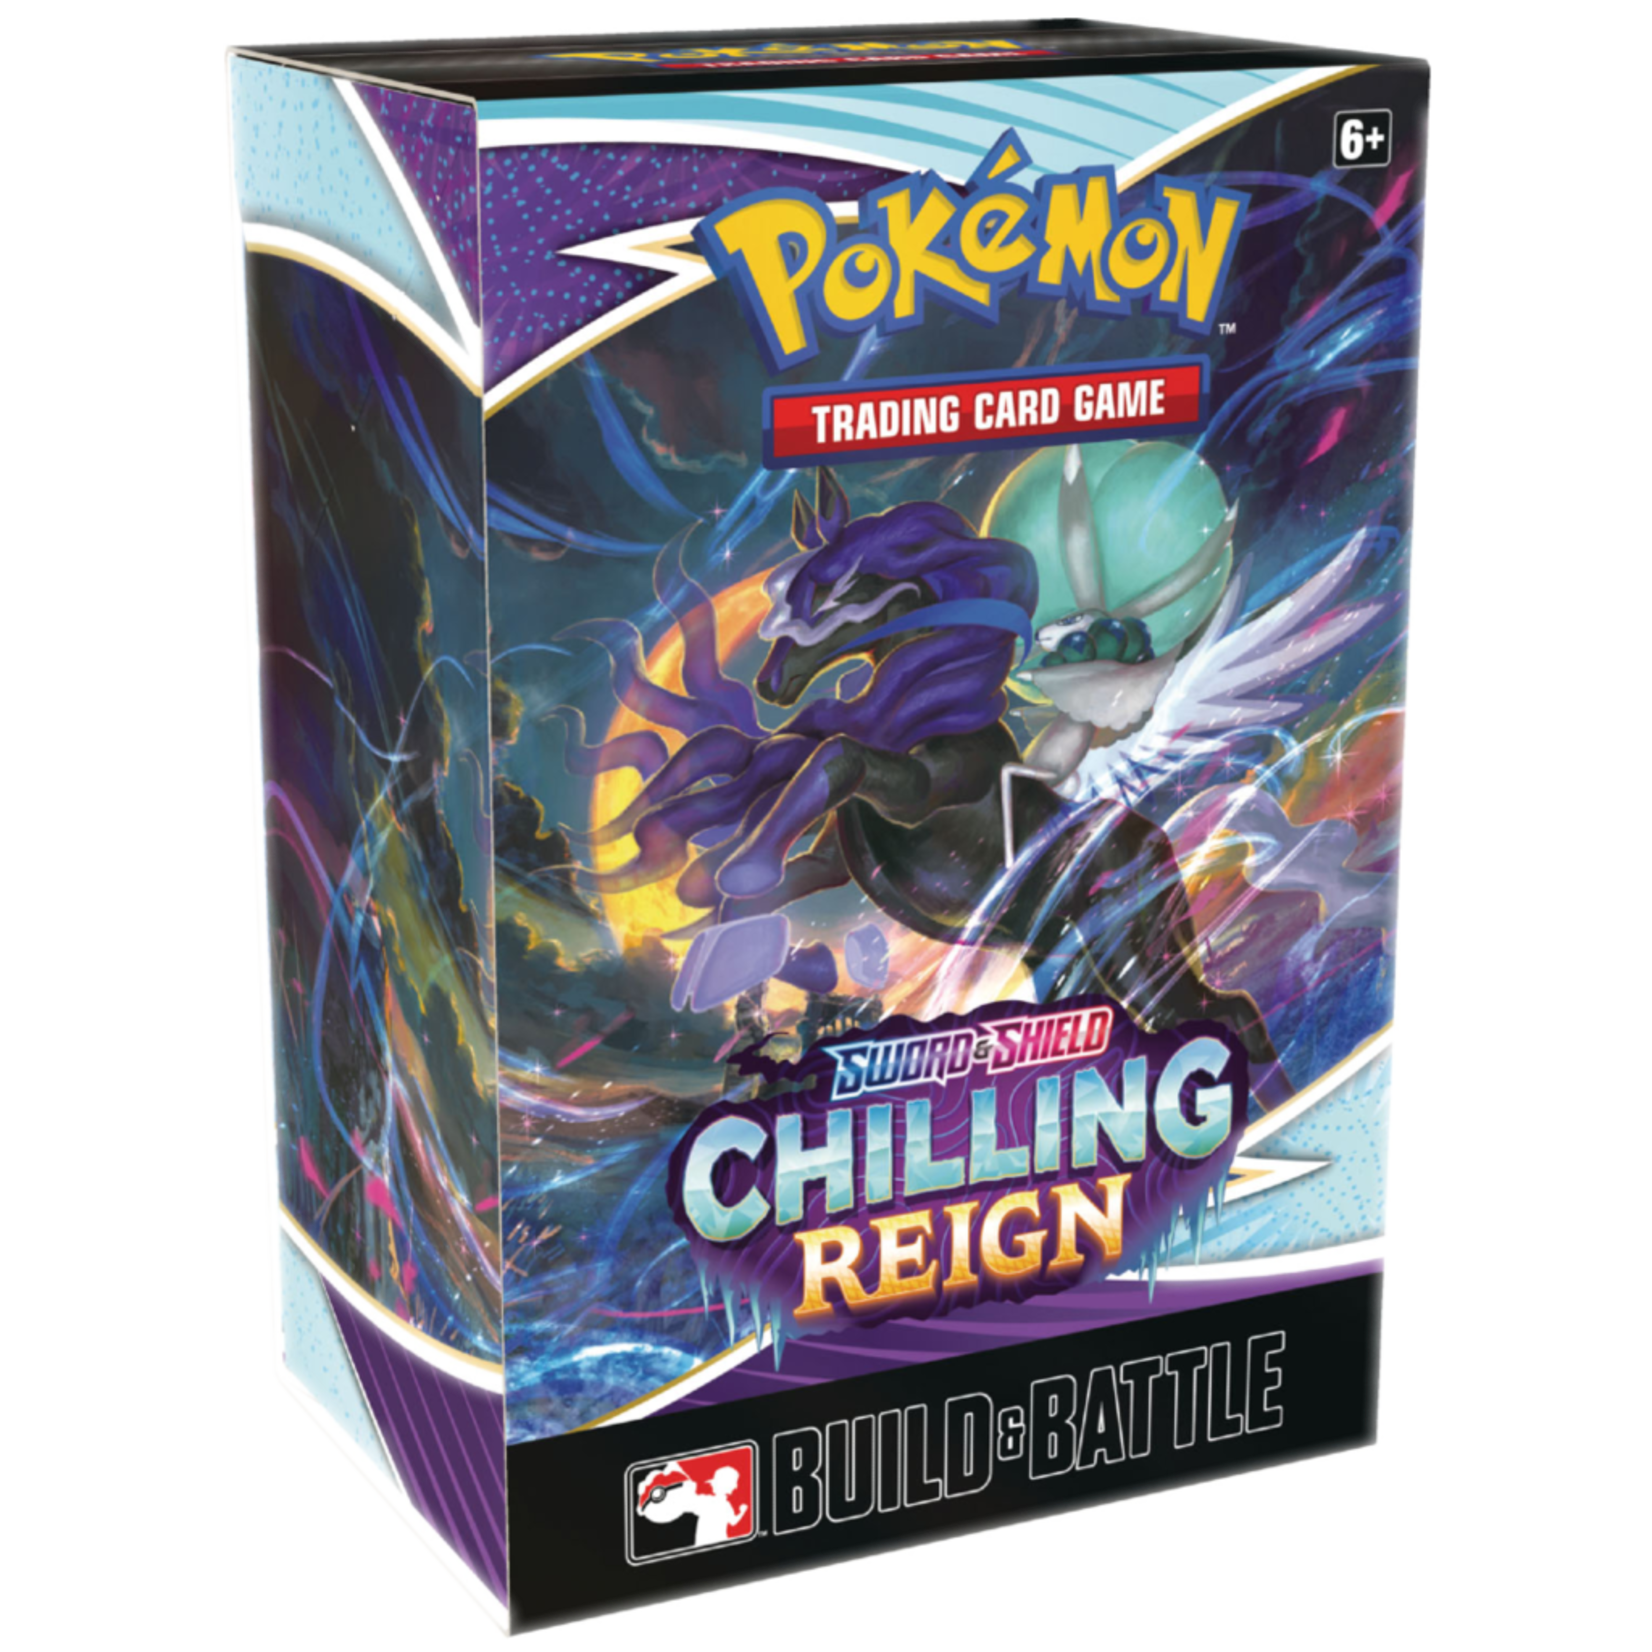 Pokemon Pokemon: Chilling Reign Build & Battle Kit